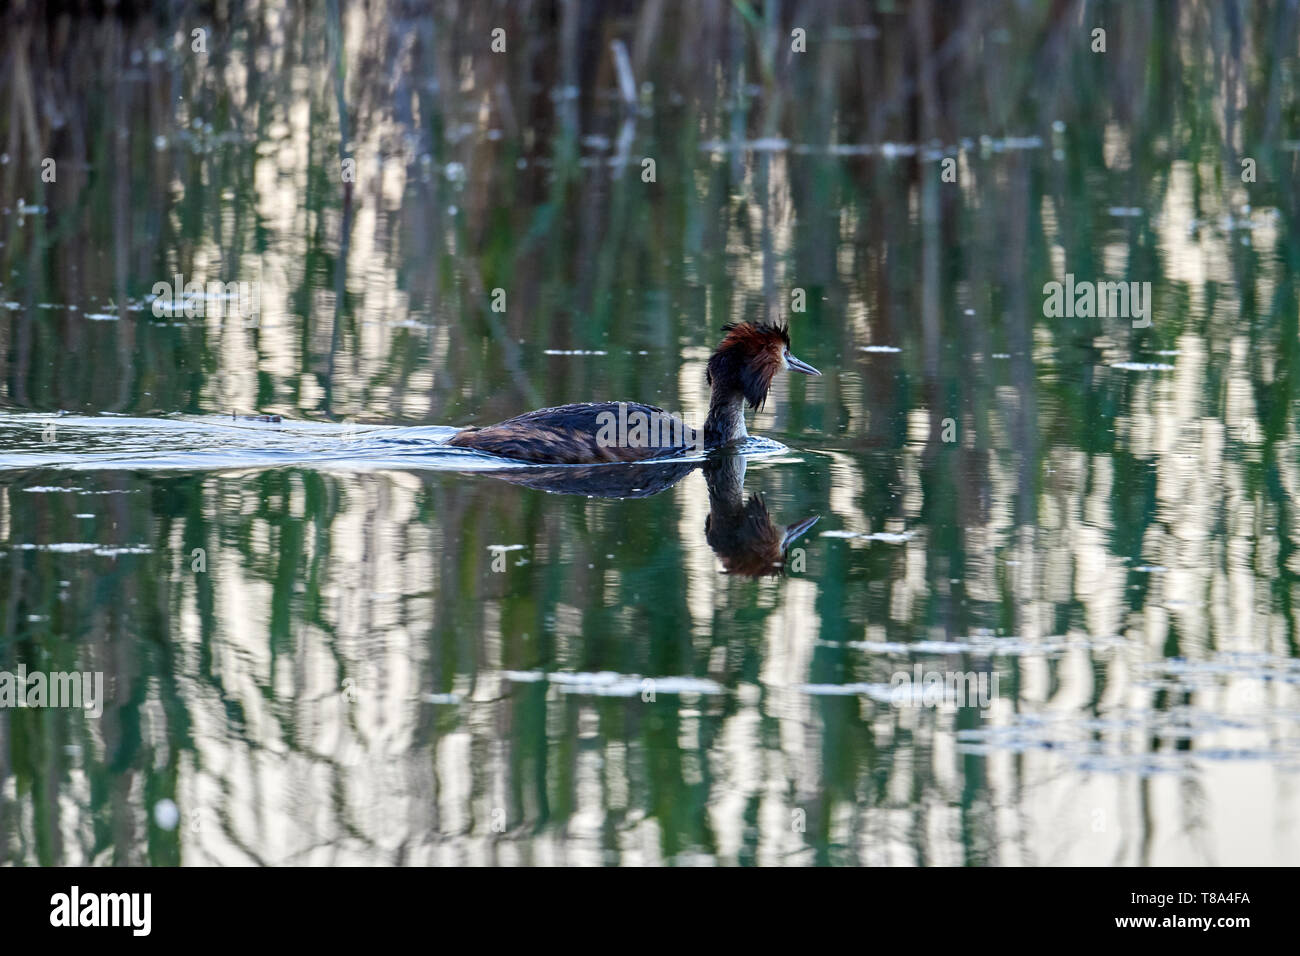 The great crested grebe swims on a lake with green water - Stock Image